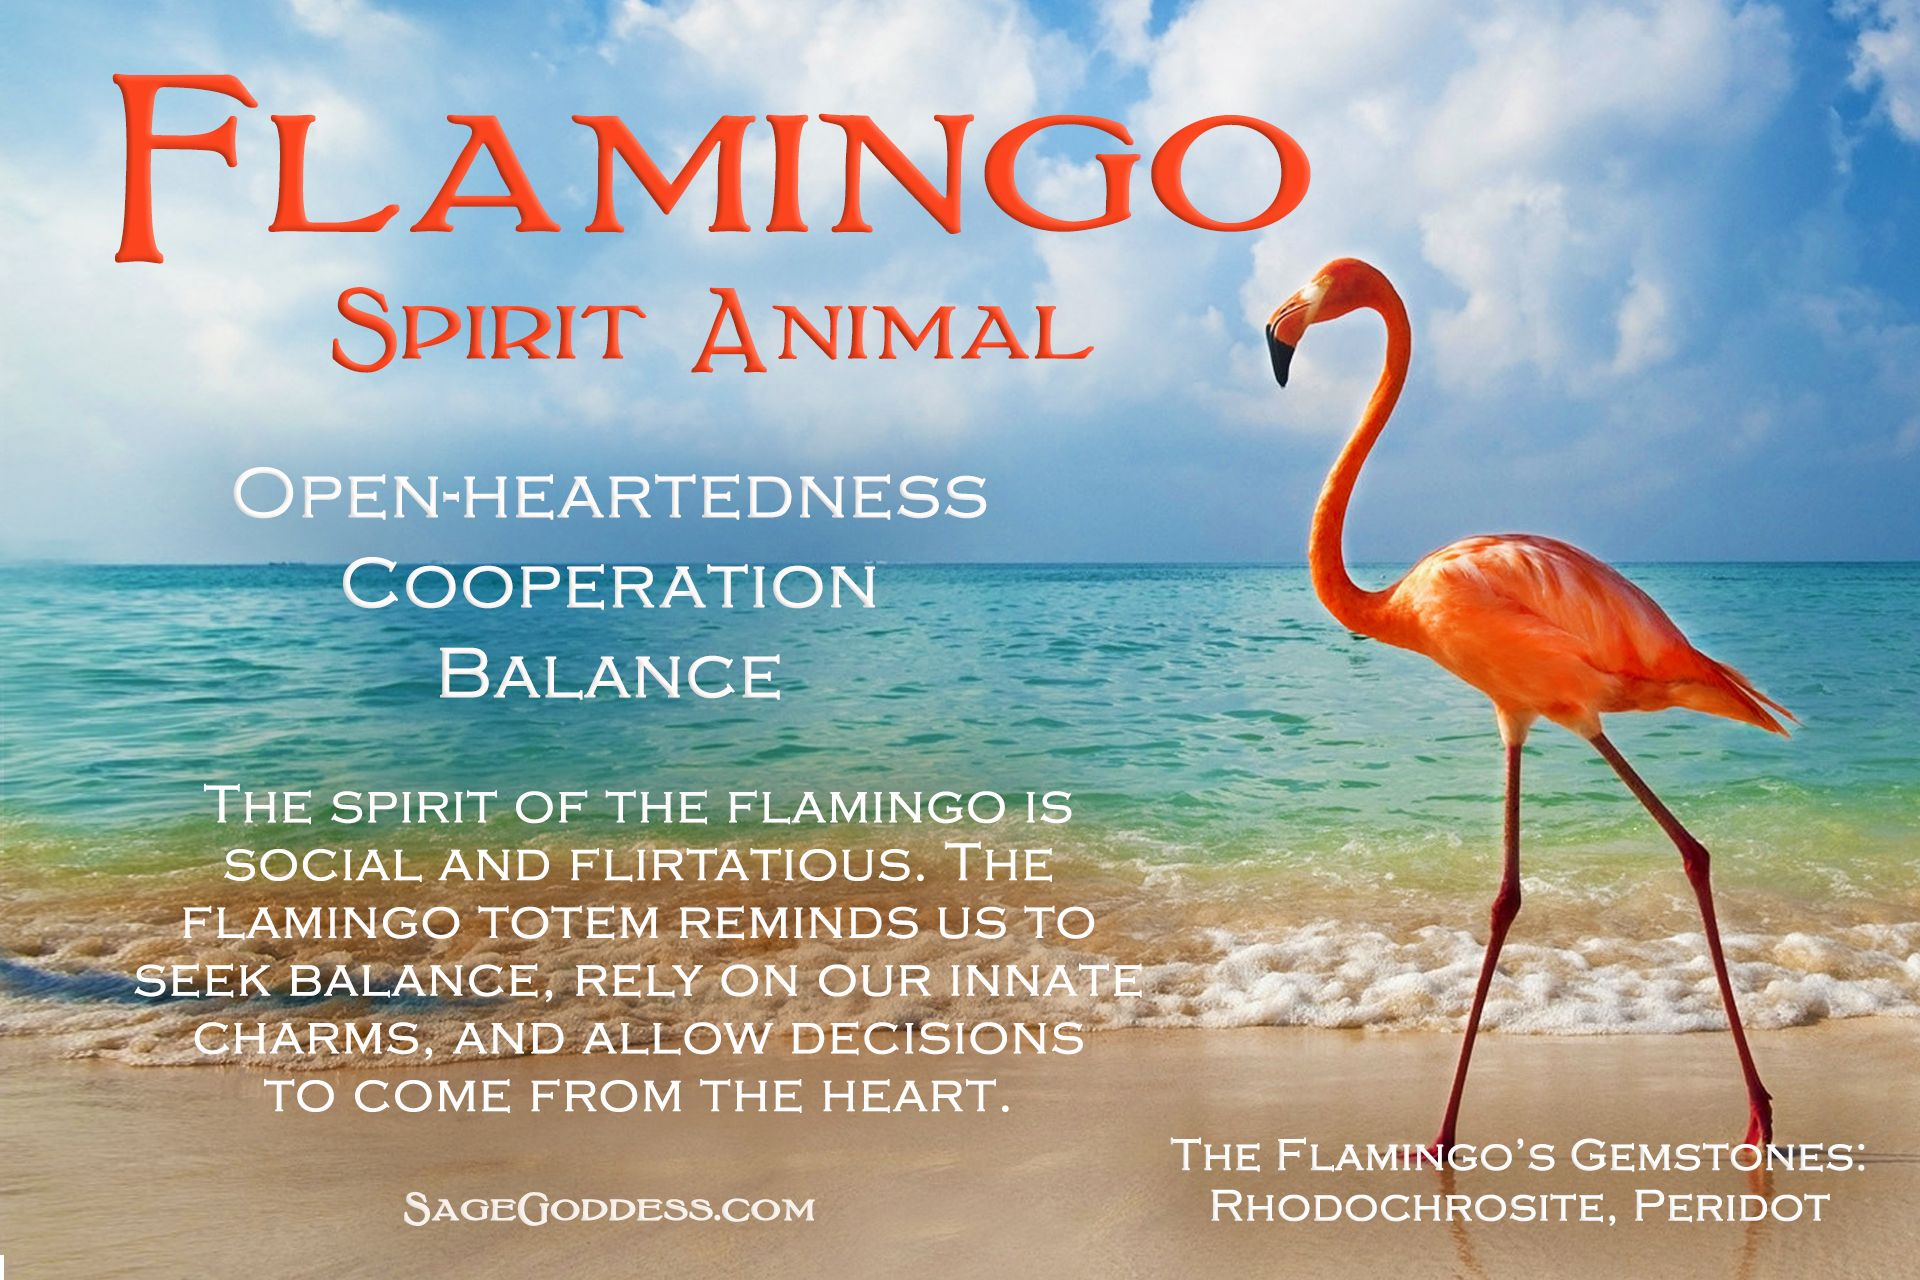 Flamingo Sprit Animal My Favorite Things Anima